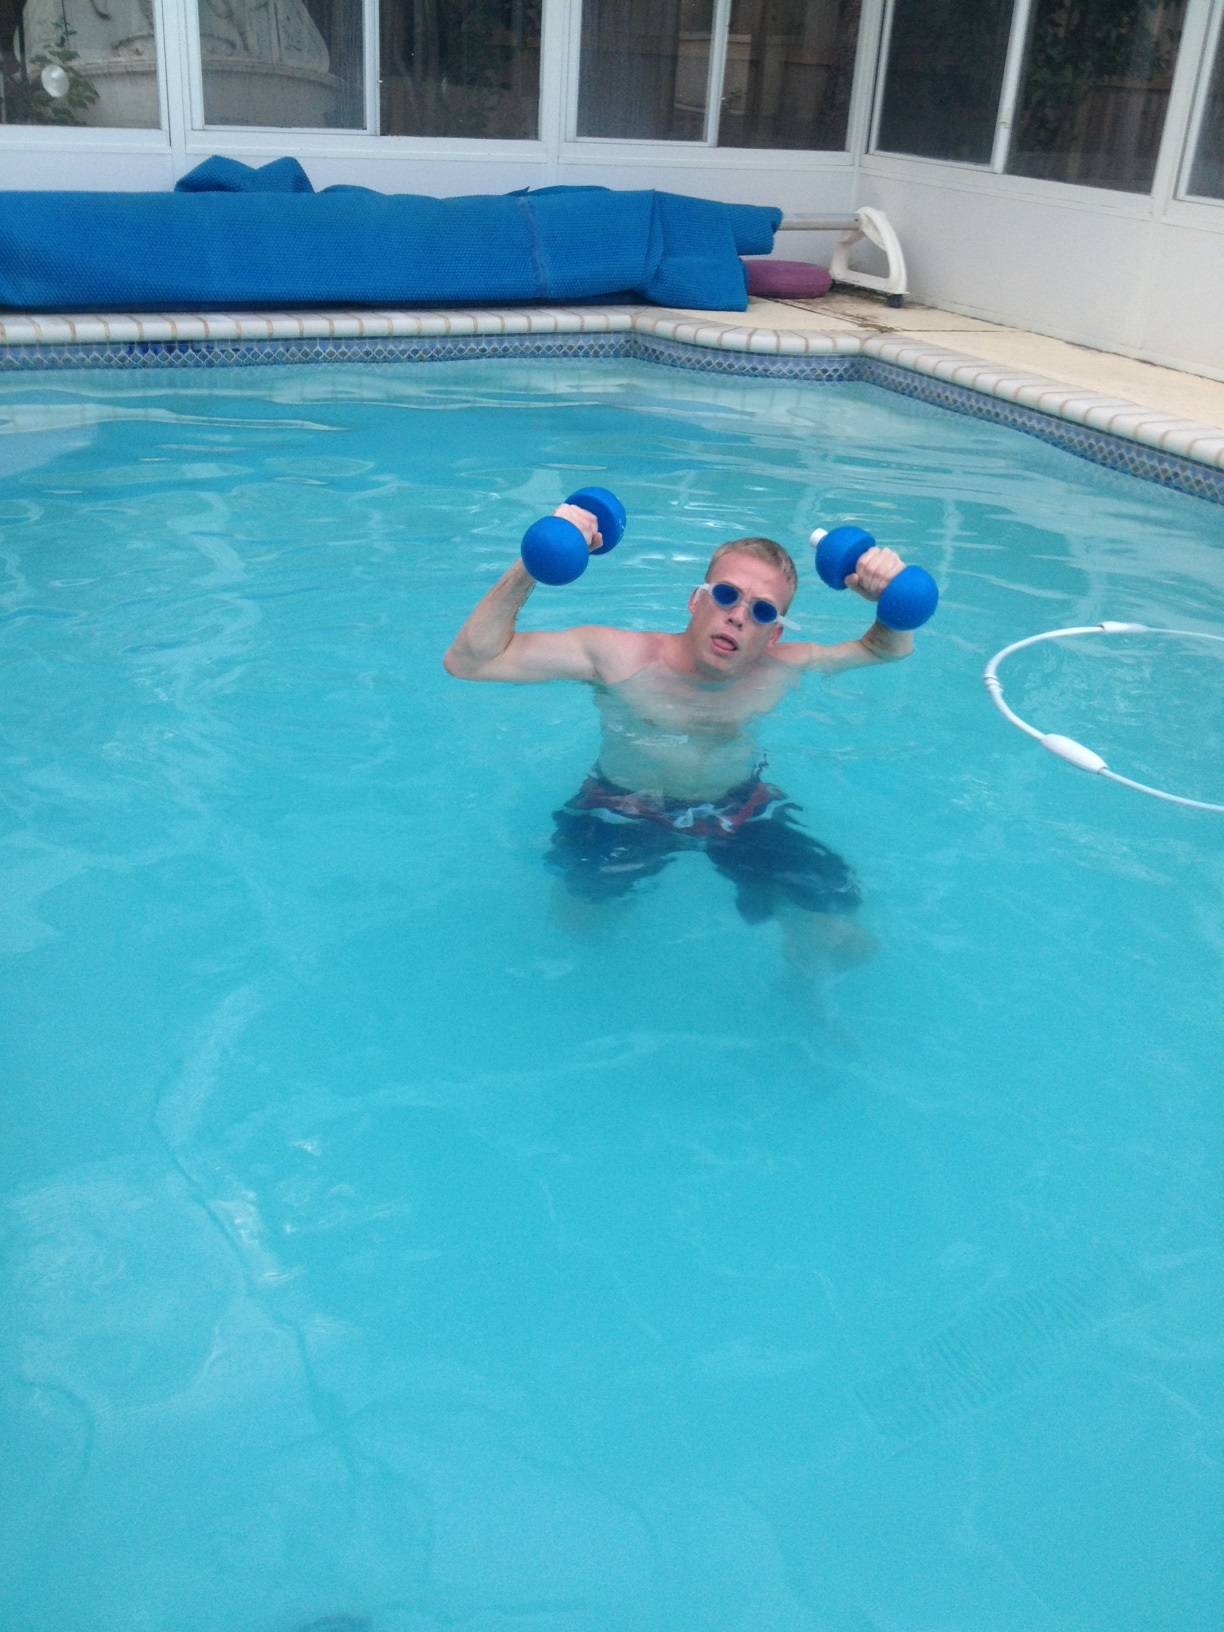 The real Michael Phelps